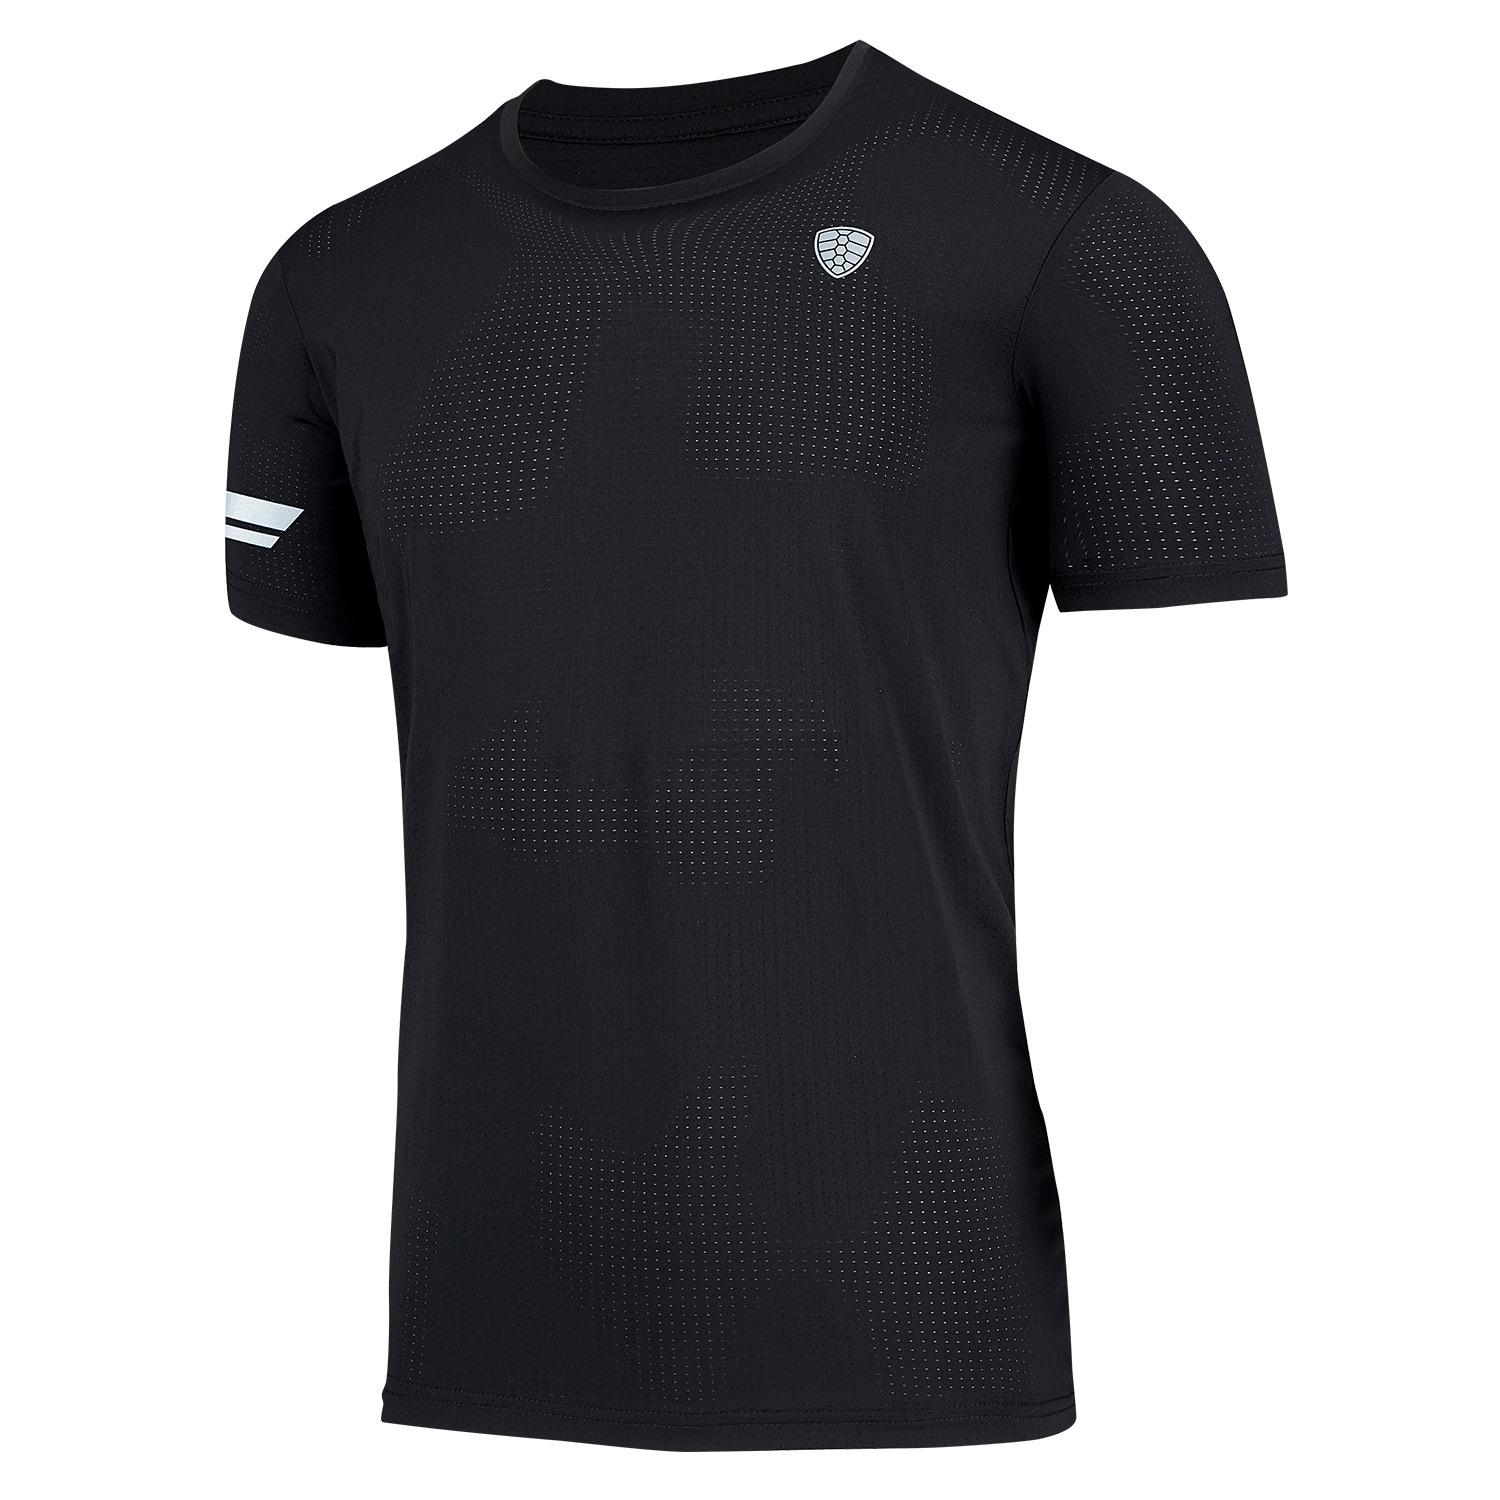 Best Selling Running Black T Shirt Men Gym T-shirt Breathable Dry Fit Sport New Quick Dry Basketball Soccer Fitness Workout Brand Tee